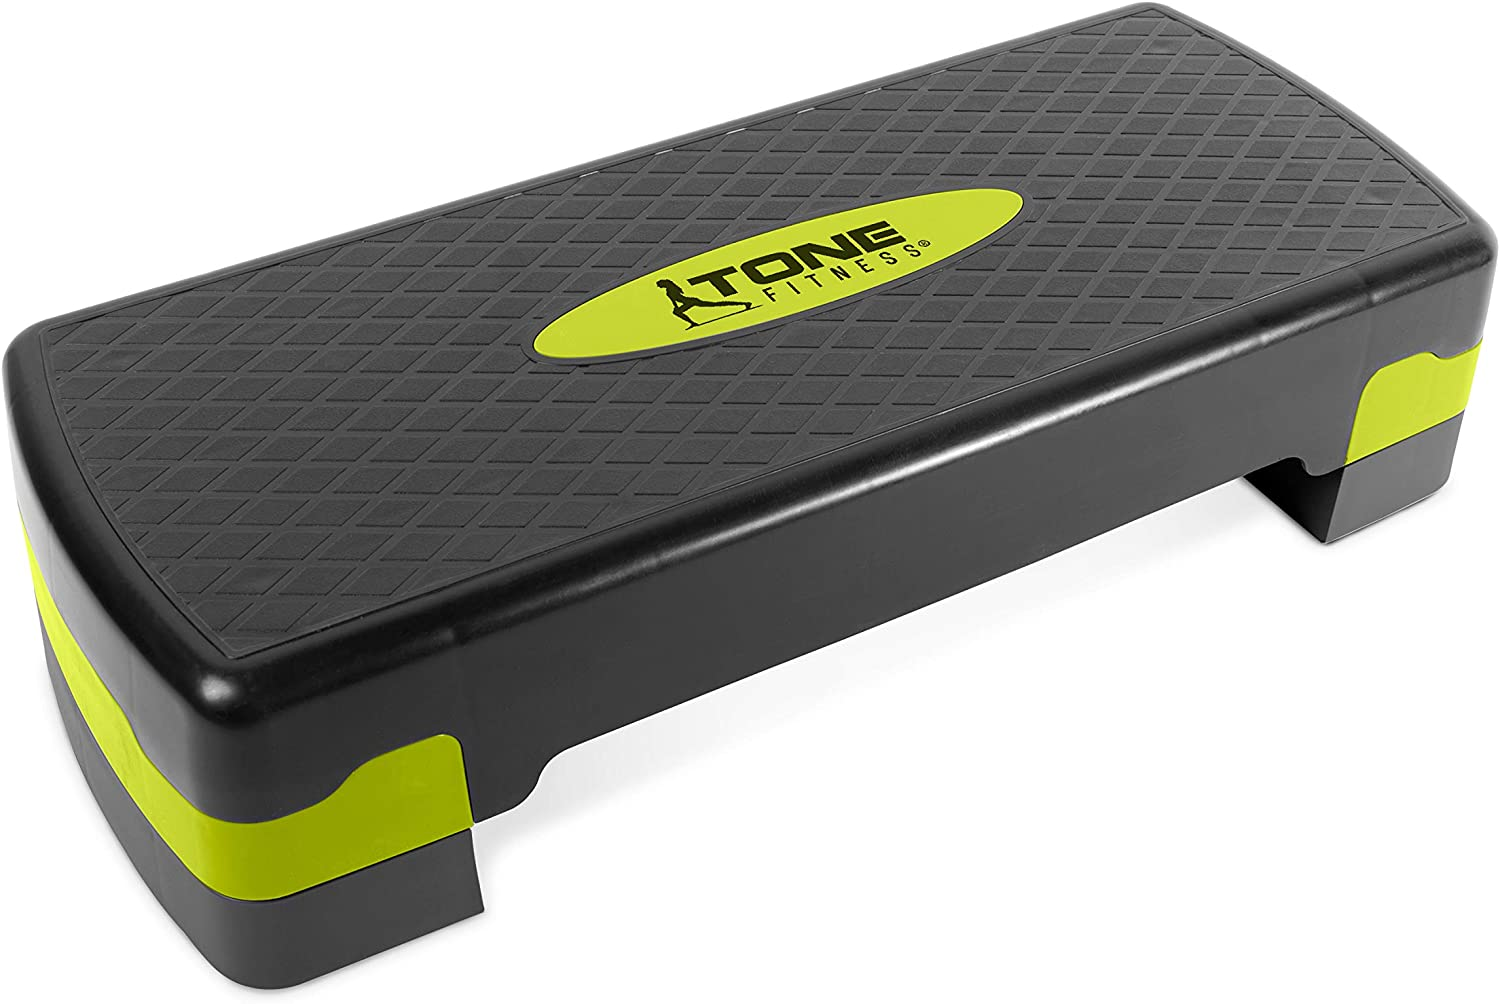 Tone Fitness Aerobic Step Platform | Exercise Step | Full and Compact Sizes